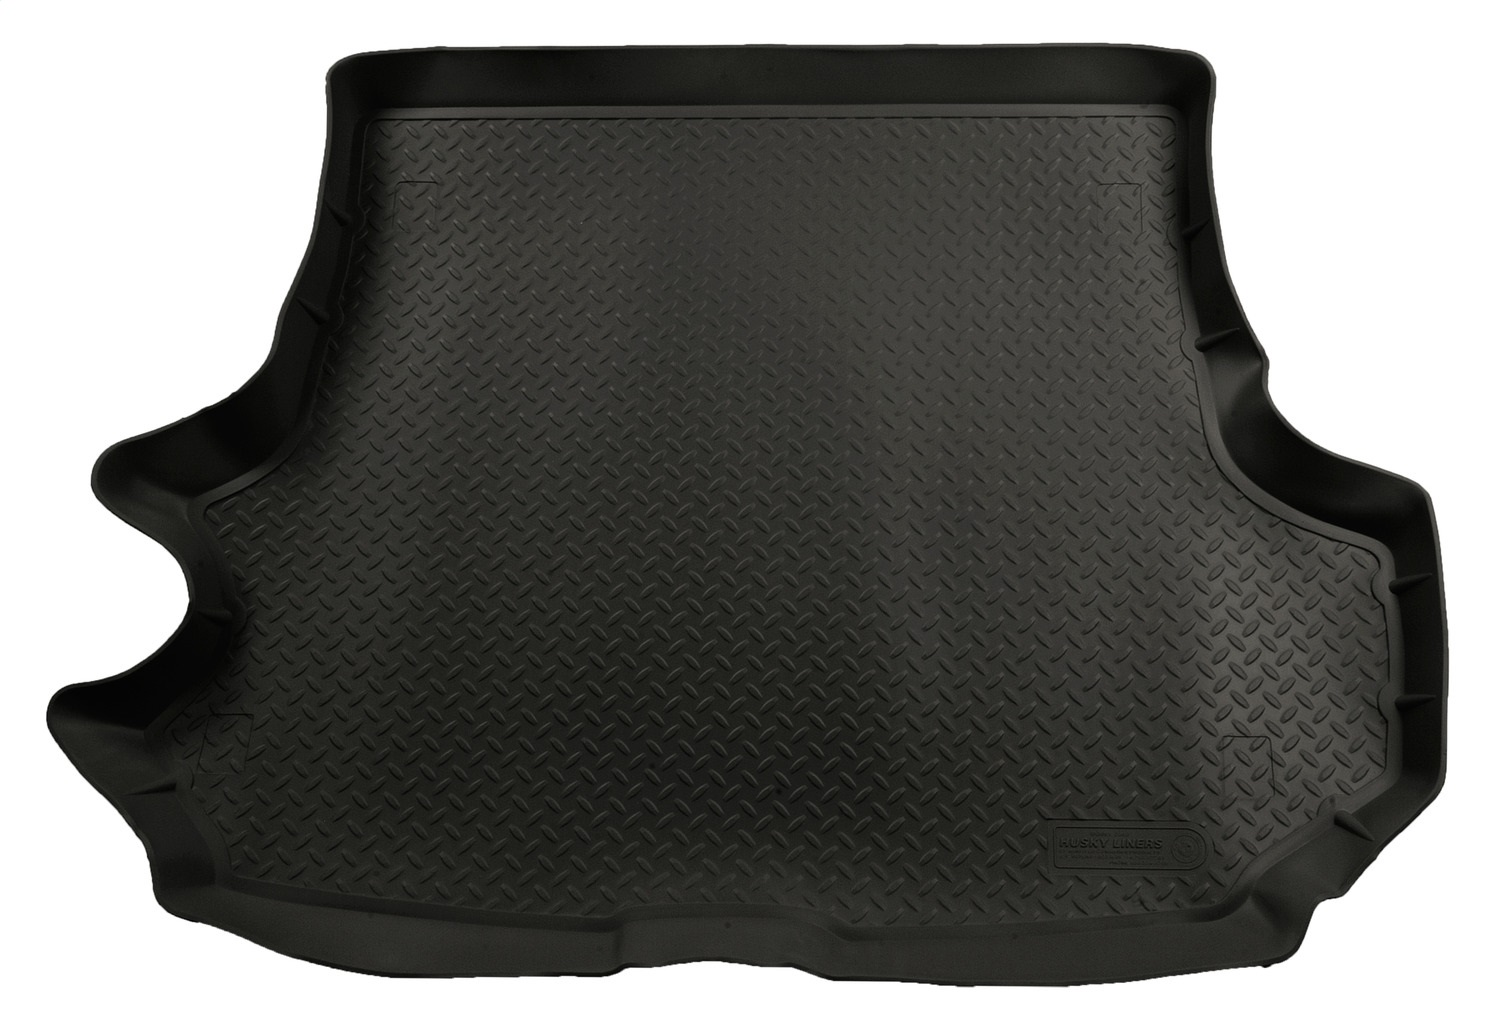 Husky Liners 20601 Classic Style Cargo Liner Fits 99-04 Grand Cherokee (WJ)